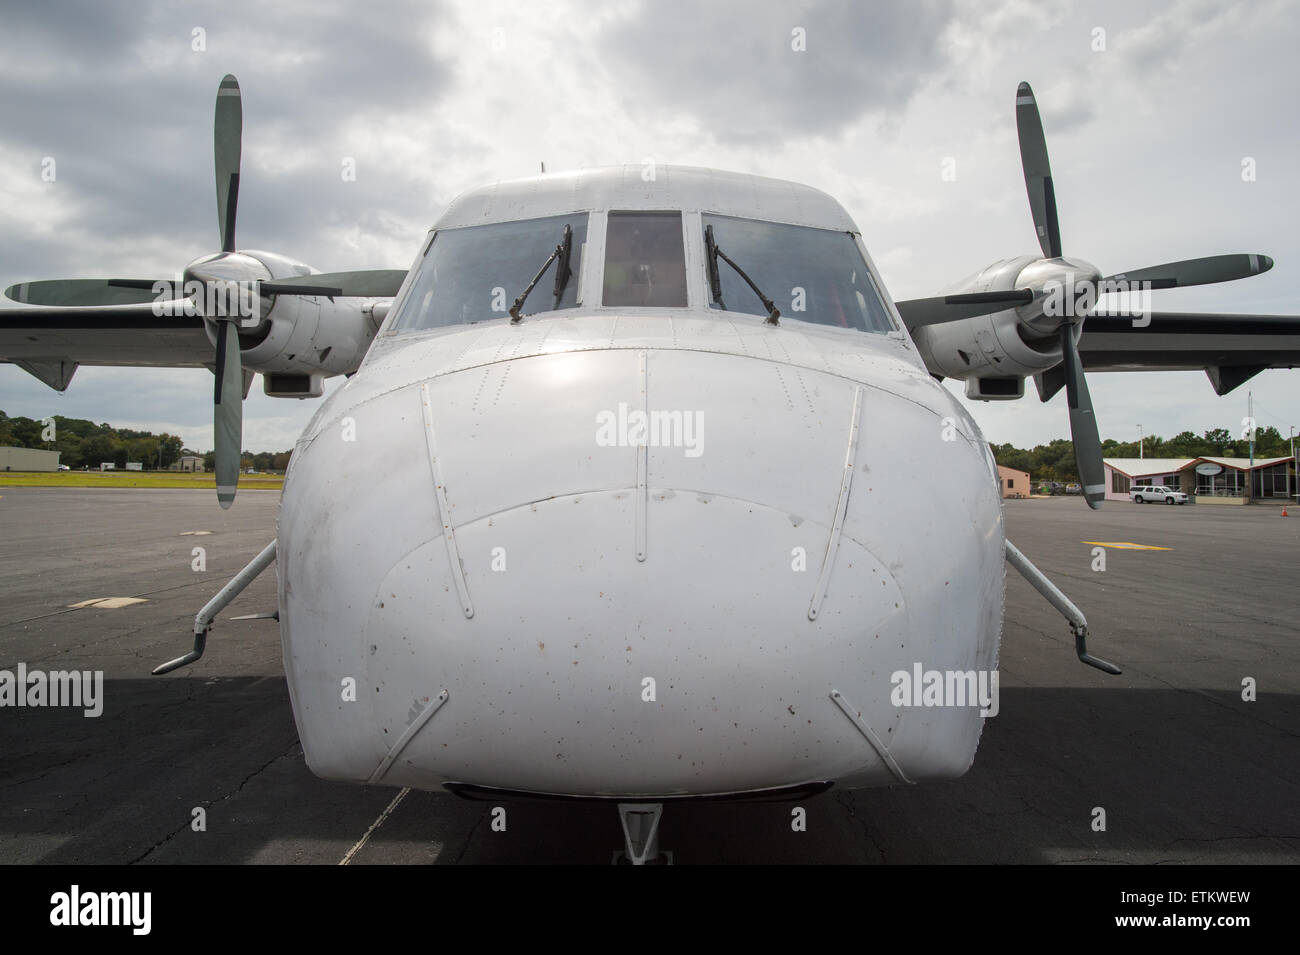 Large nose of airplane USA - Stock Image